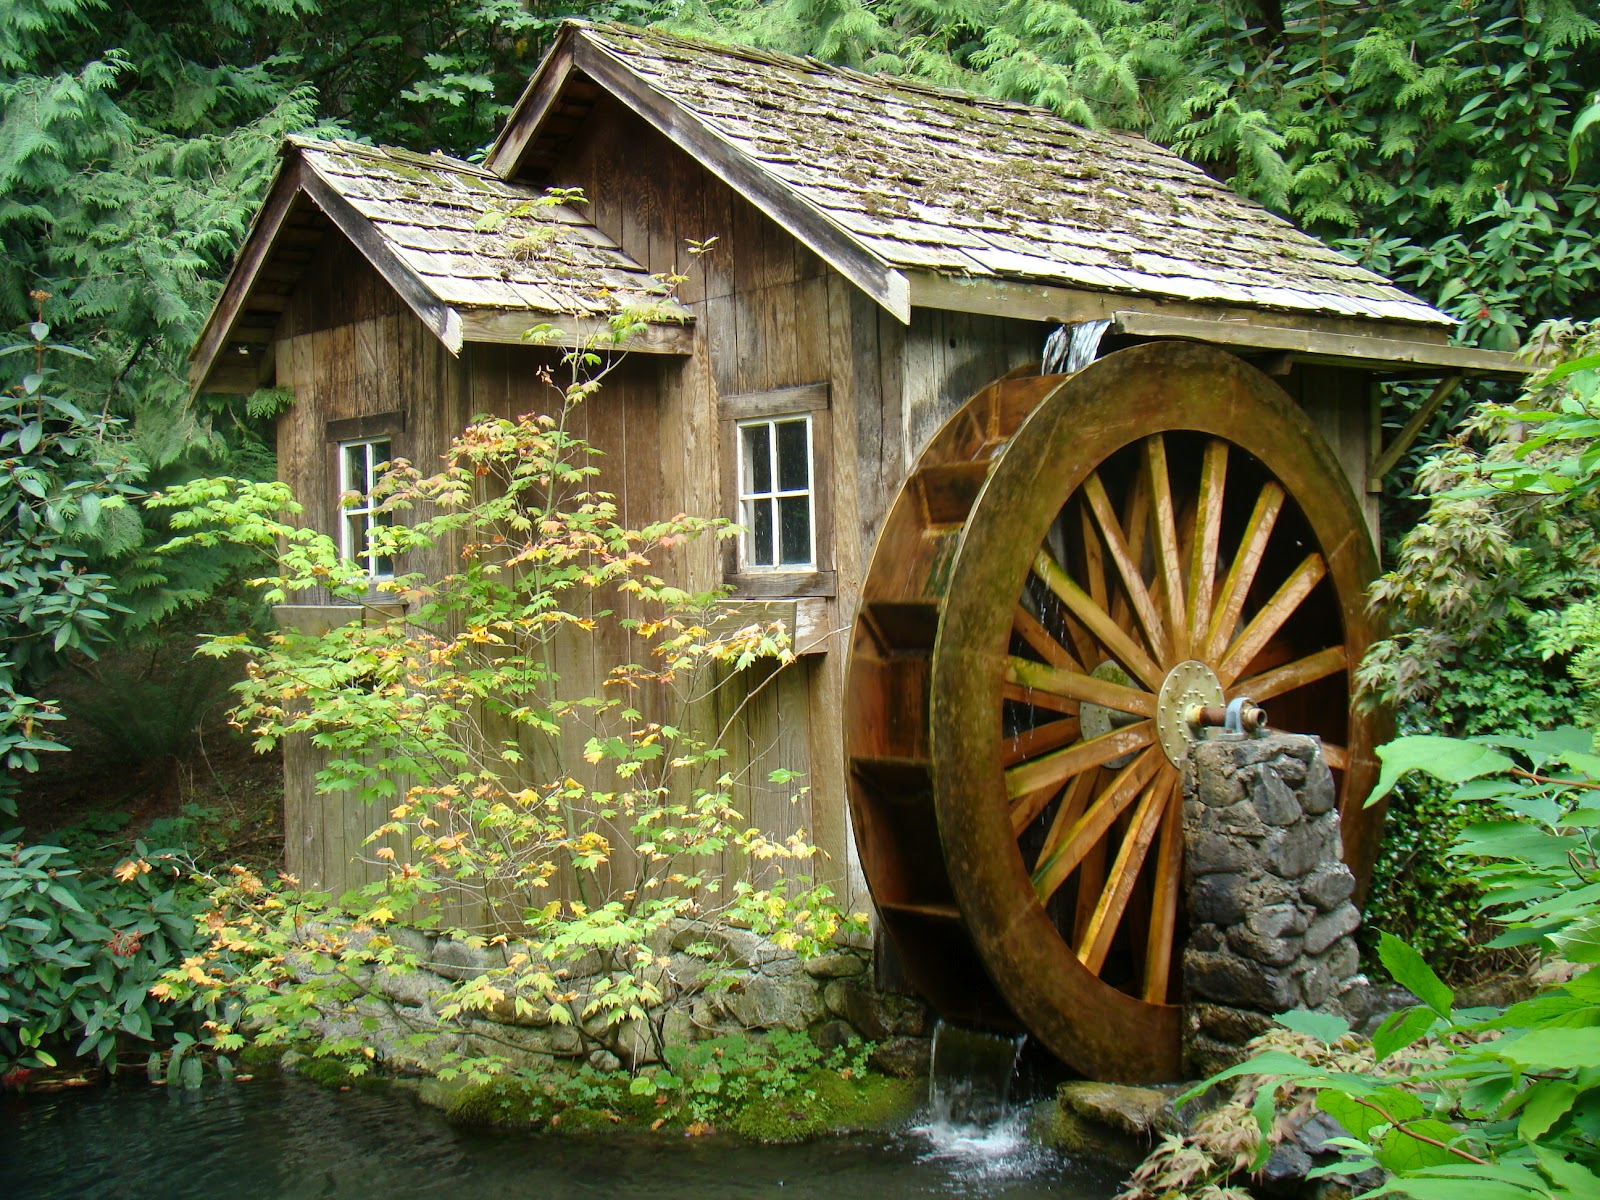 Water Wheel Mill Pictures Old Water Wheel Mills in The